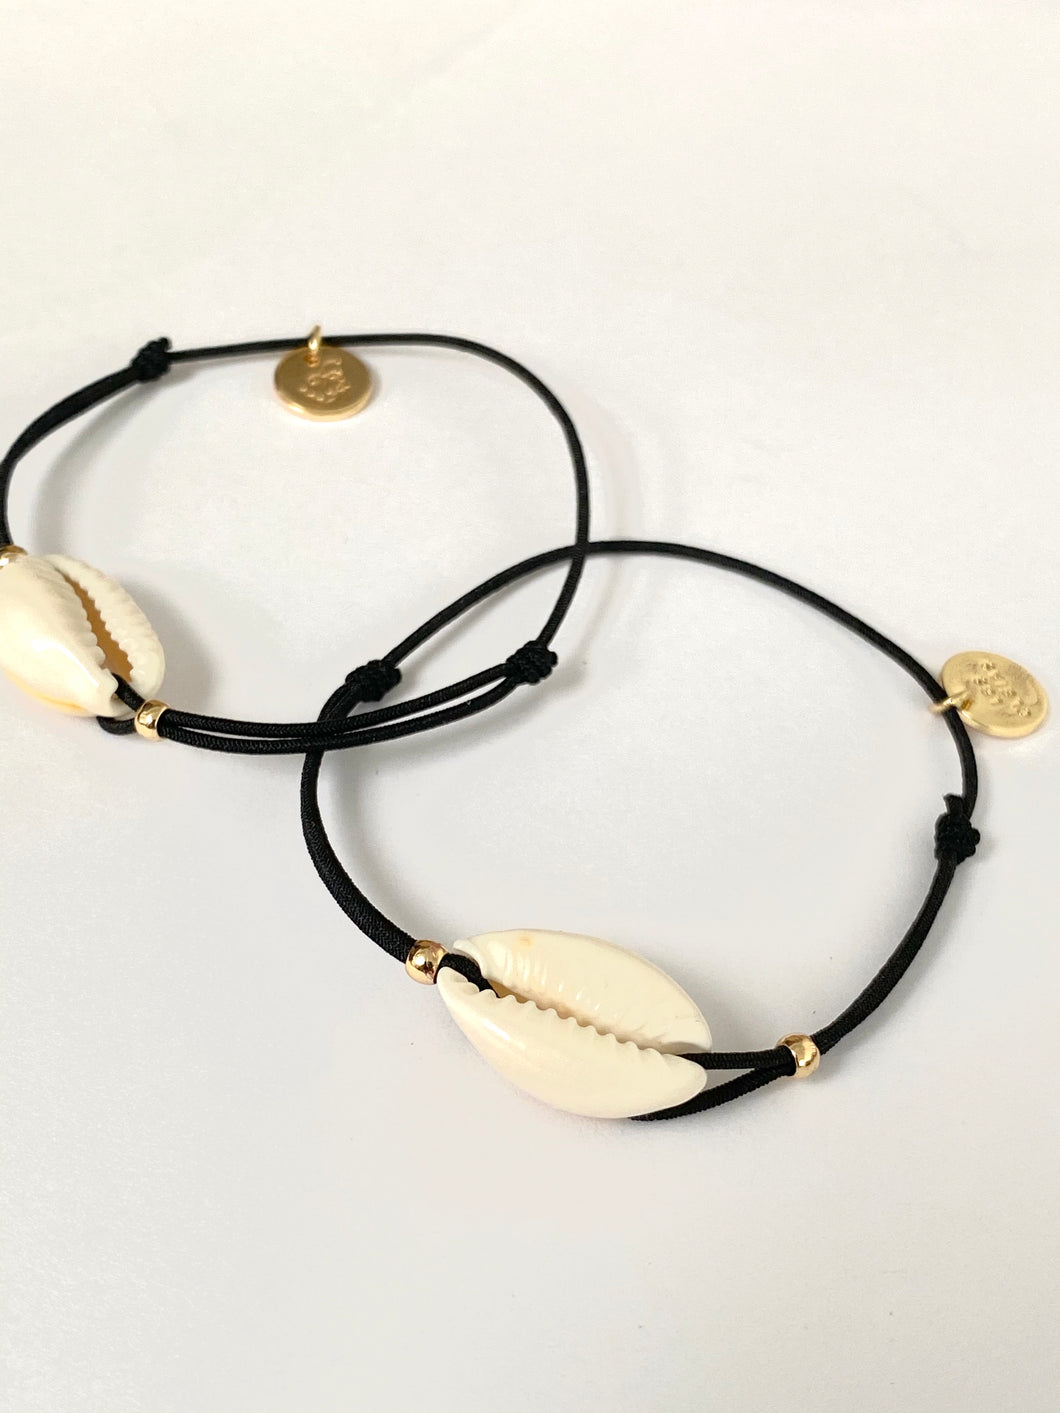 Shell bracelet on elastic string